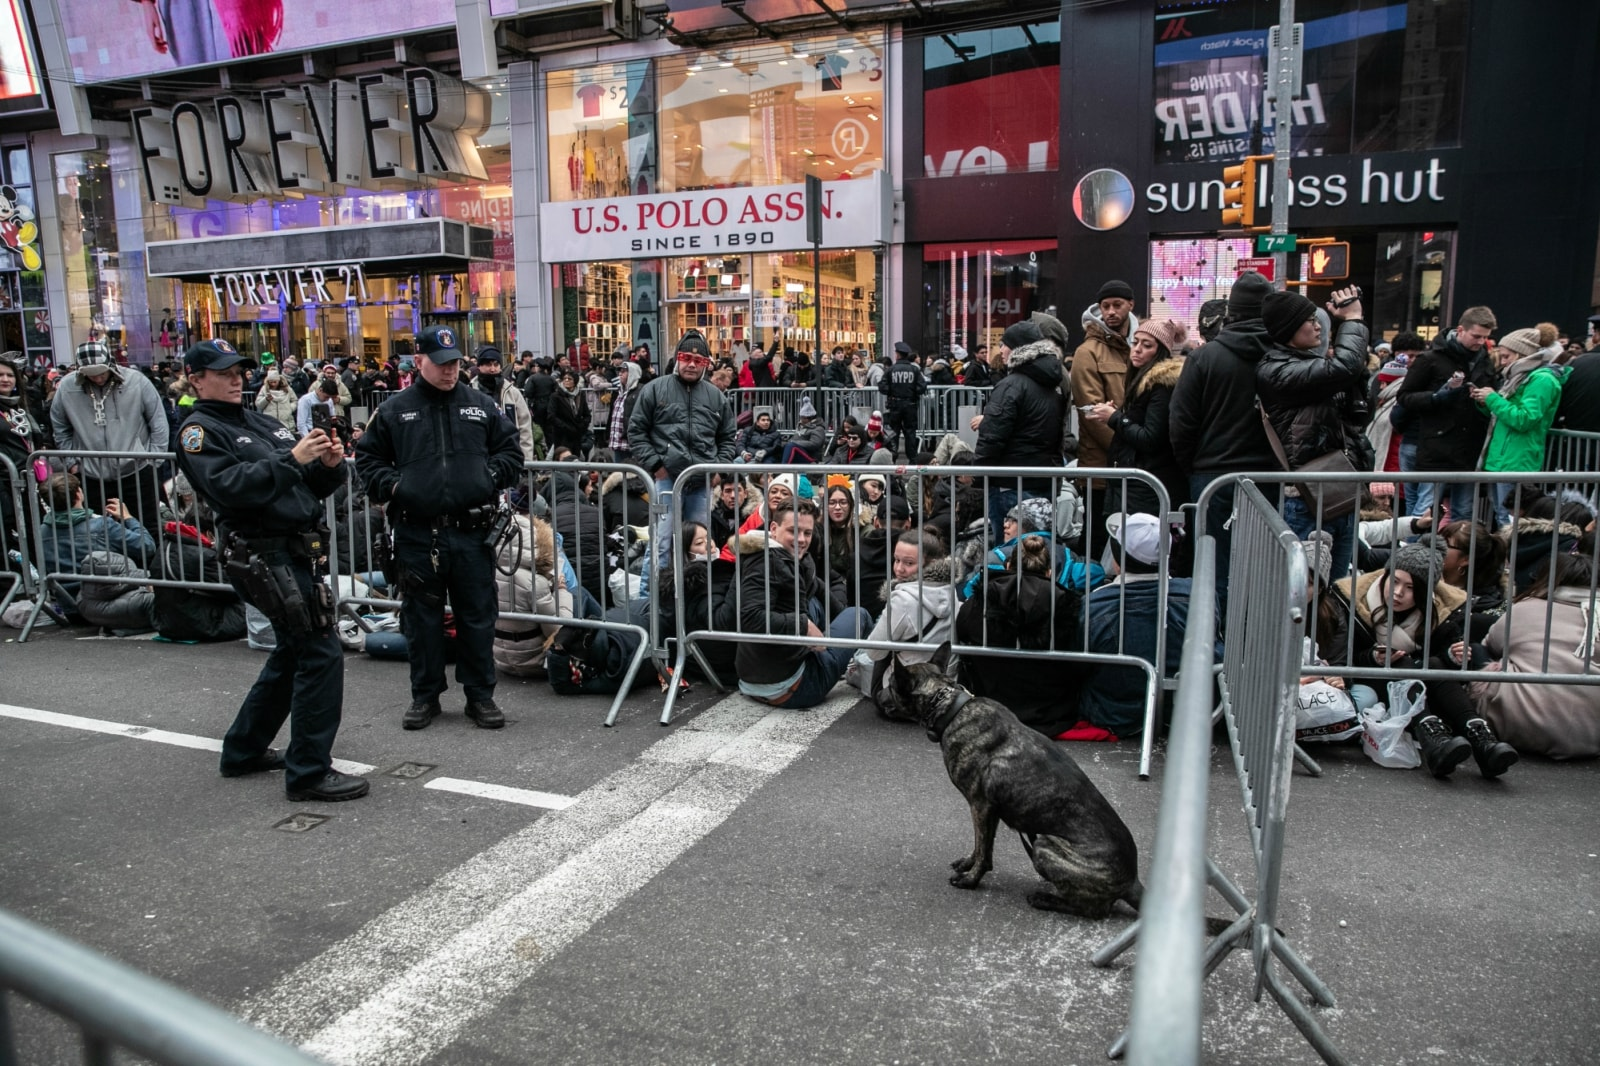 A New York Police Department (NYPD) officer takes a picture of a K-9 dog at Times Square ahead of the New Year's Eve celebrations in Manhattan, New York, US, December 31, 2018. REUTERS/Jeenah Moon